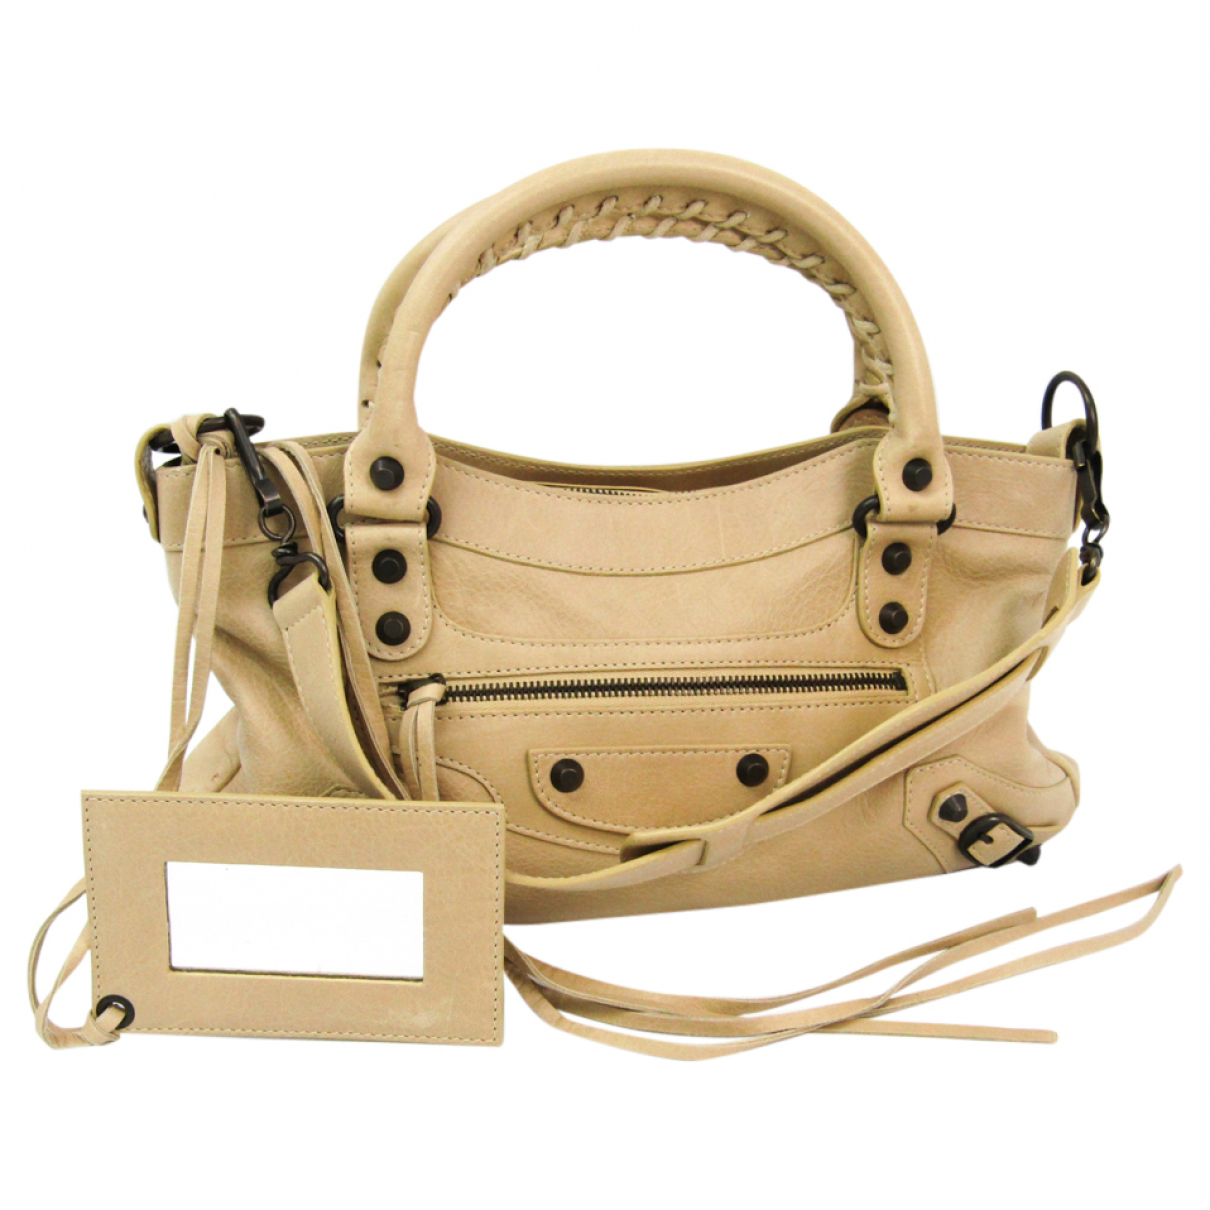 Balenciaga First Beige Leather handbag for Women \N